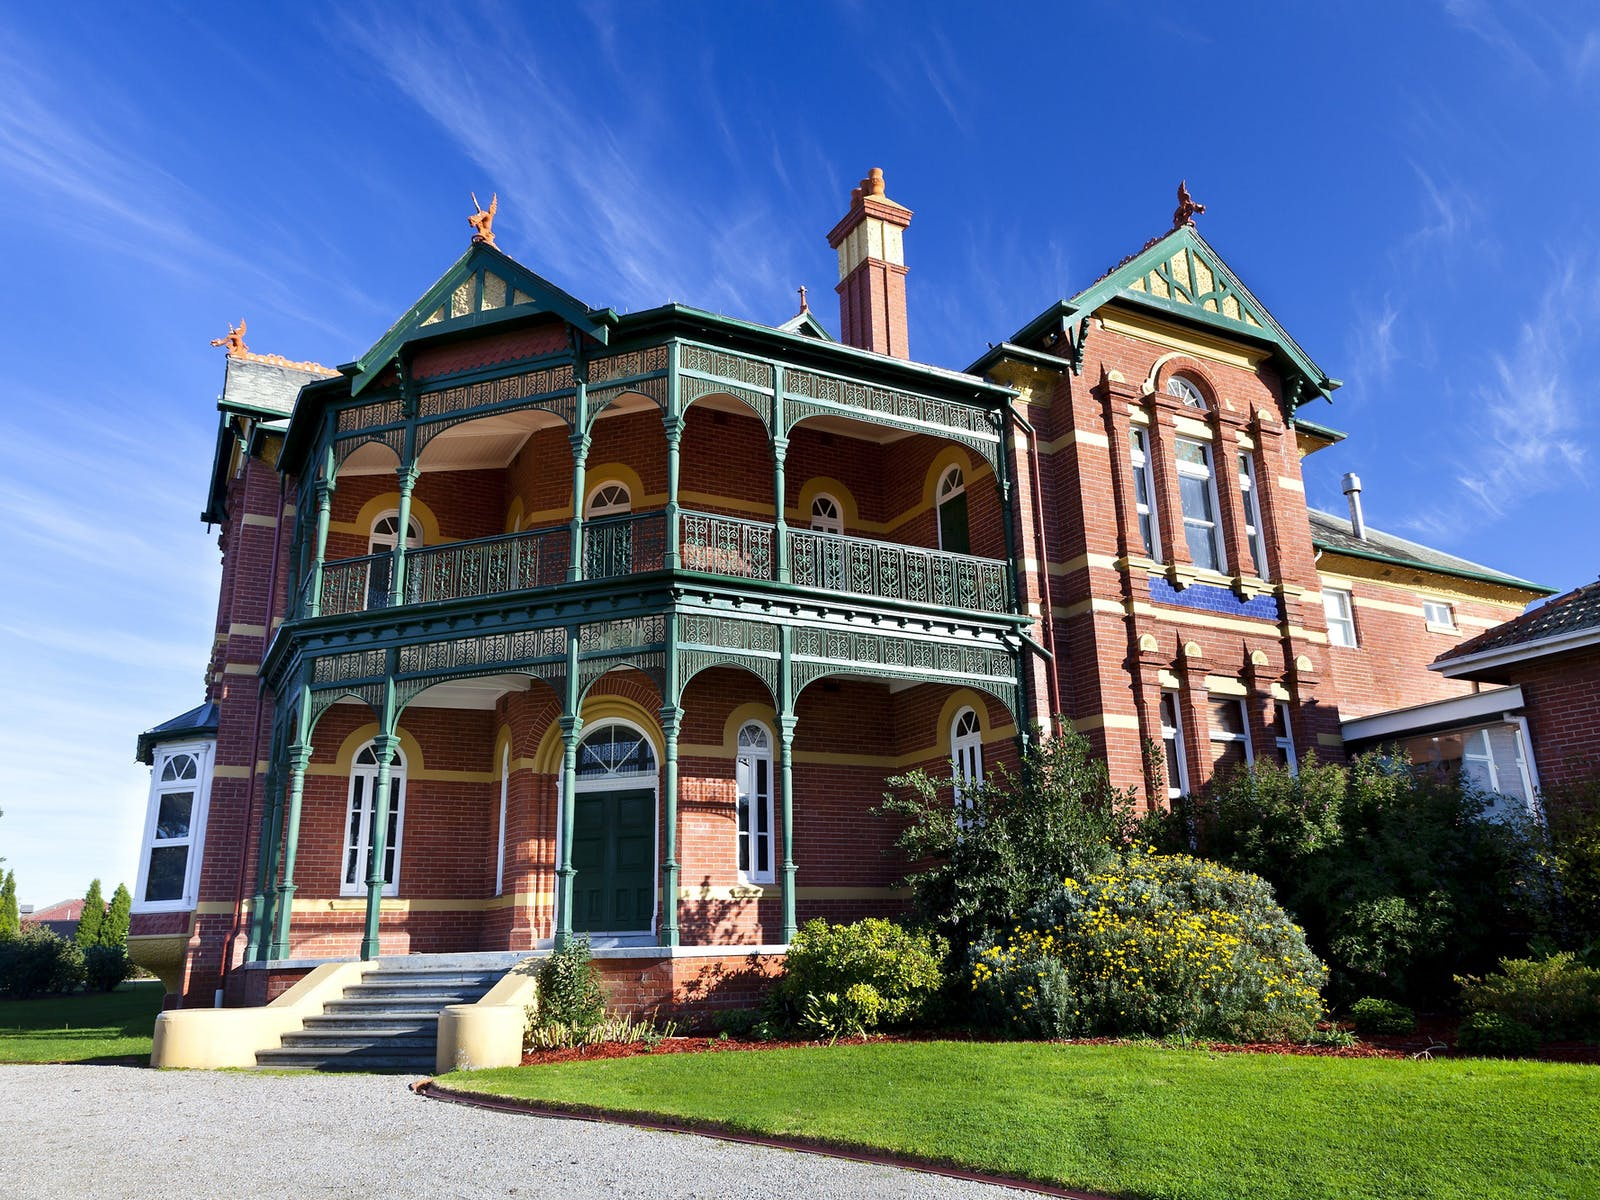 Bundoora Homestead